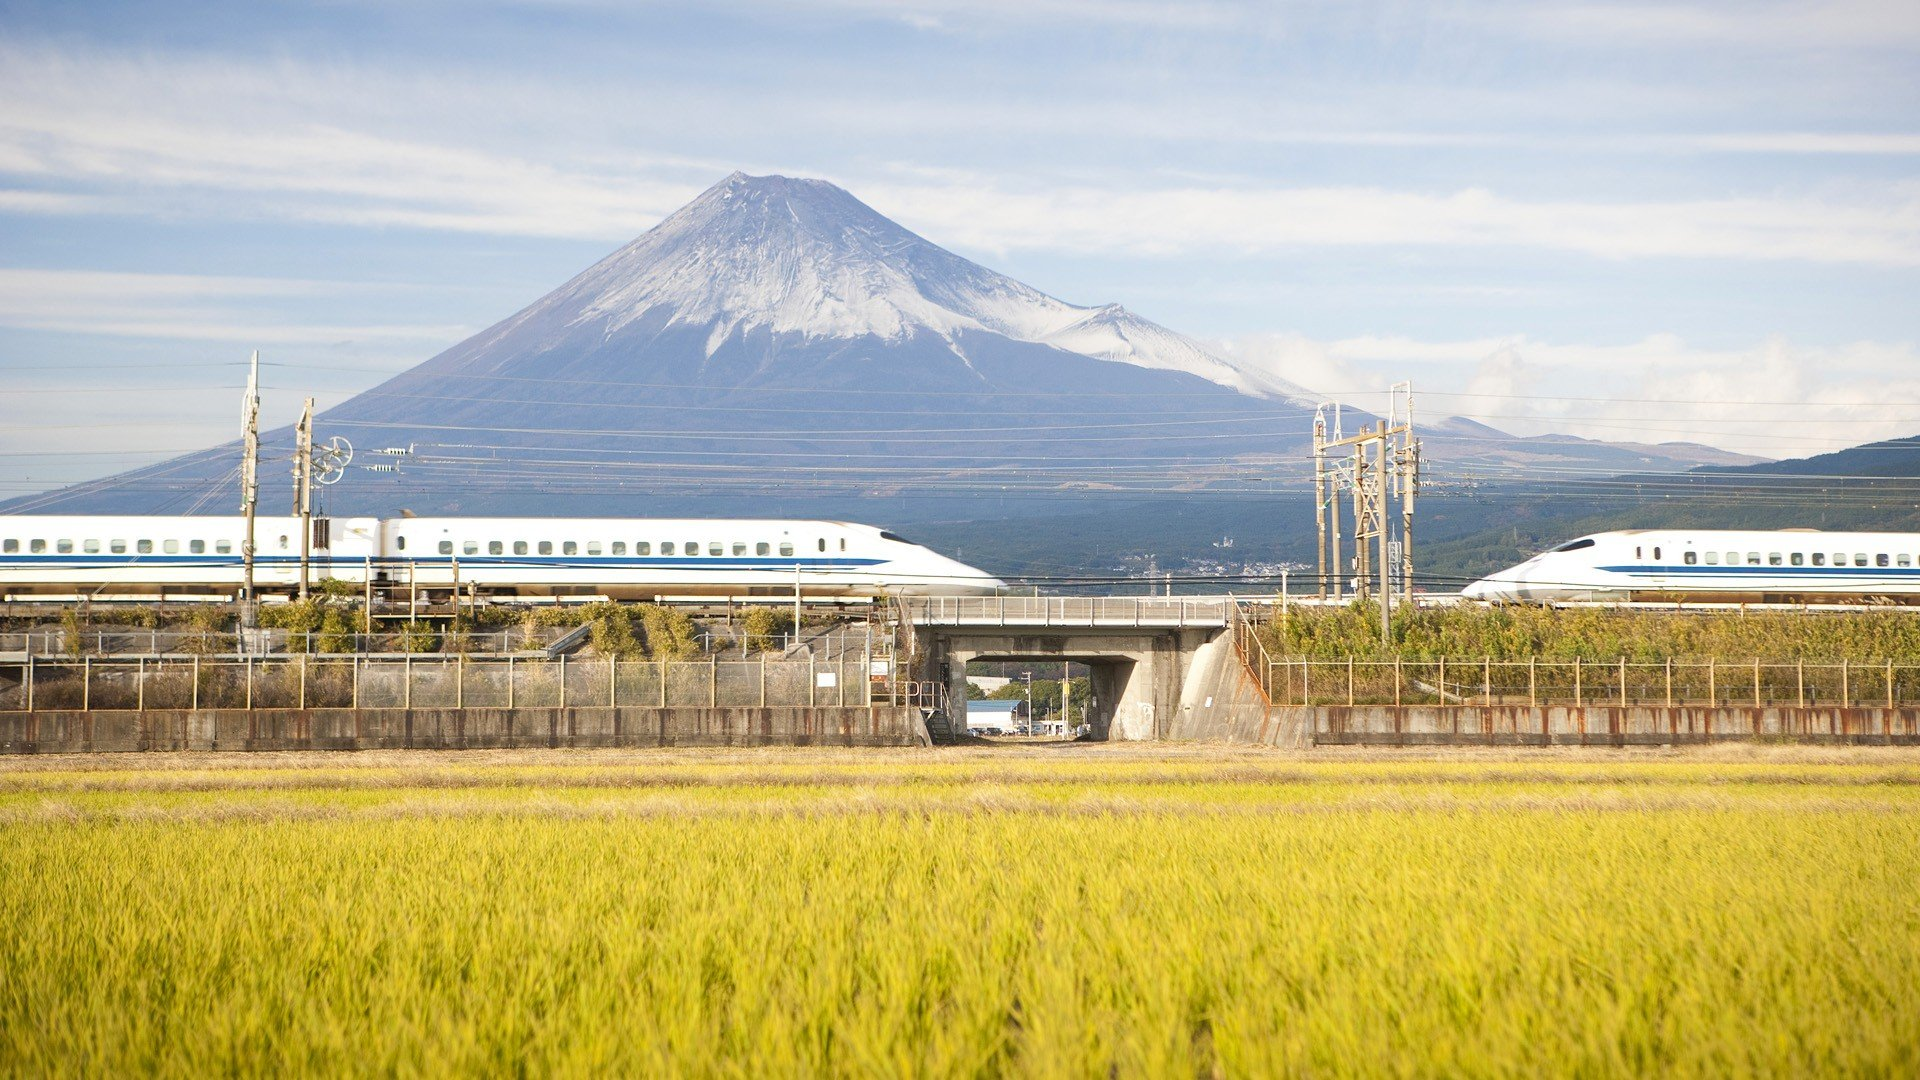 Japan Mount Fuji trains Shinkansen wallpaper 1920x1080 1920x1080